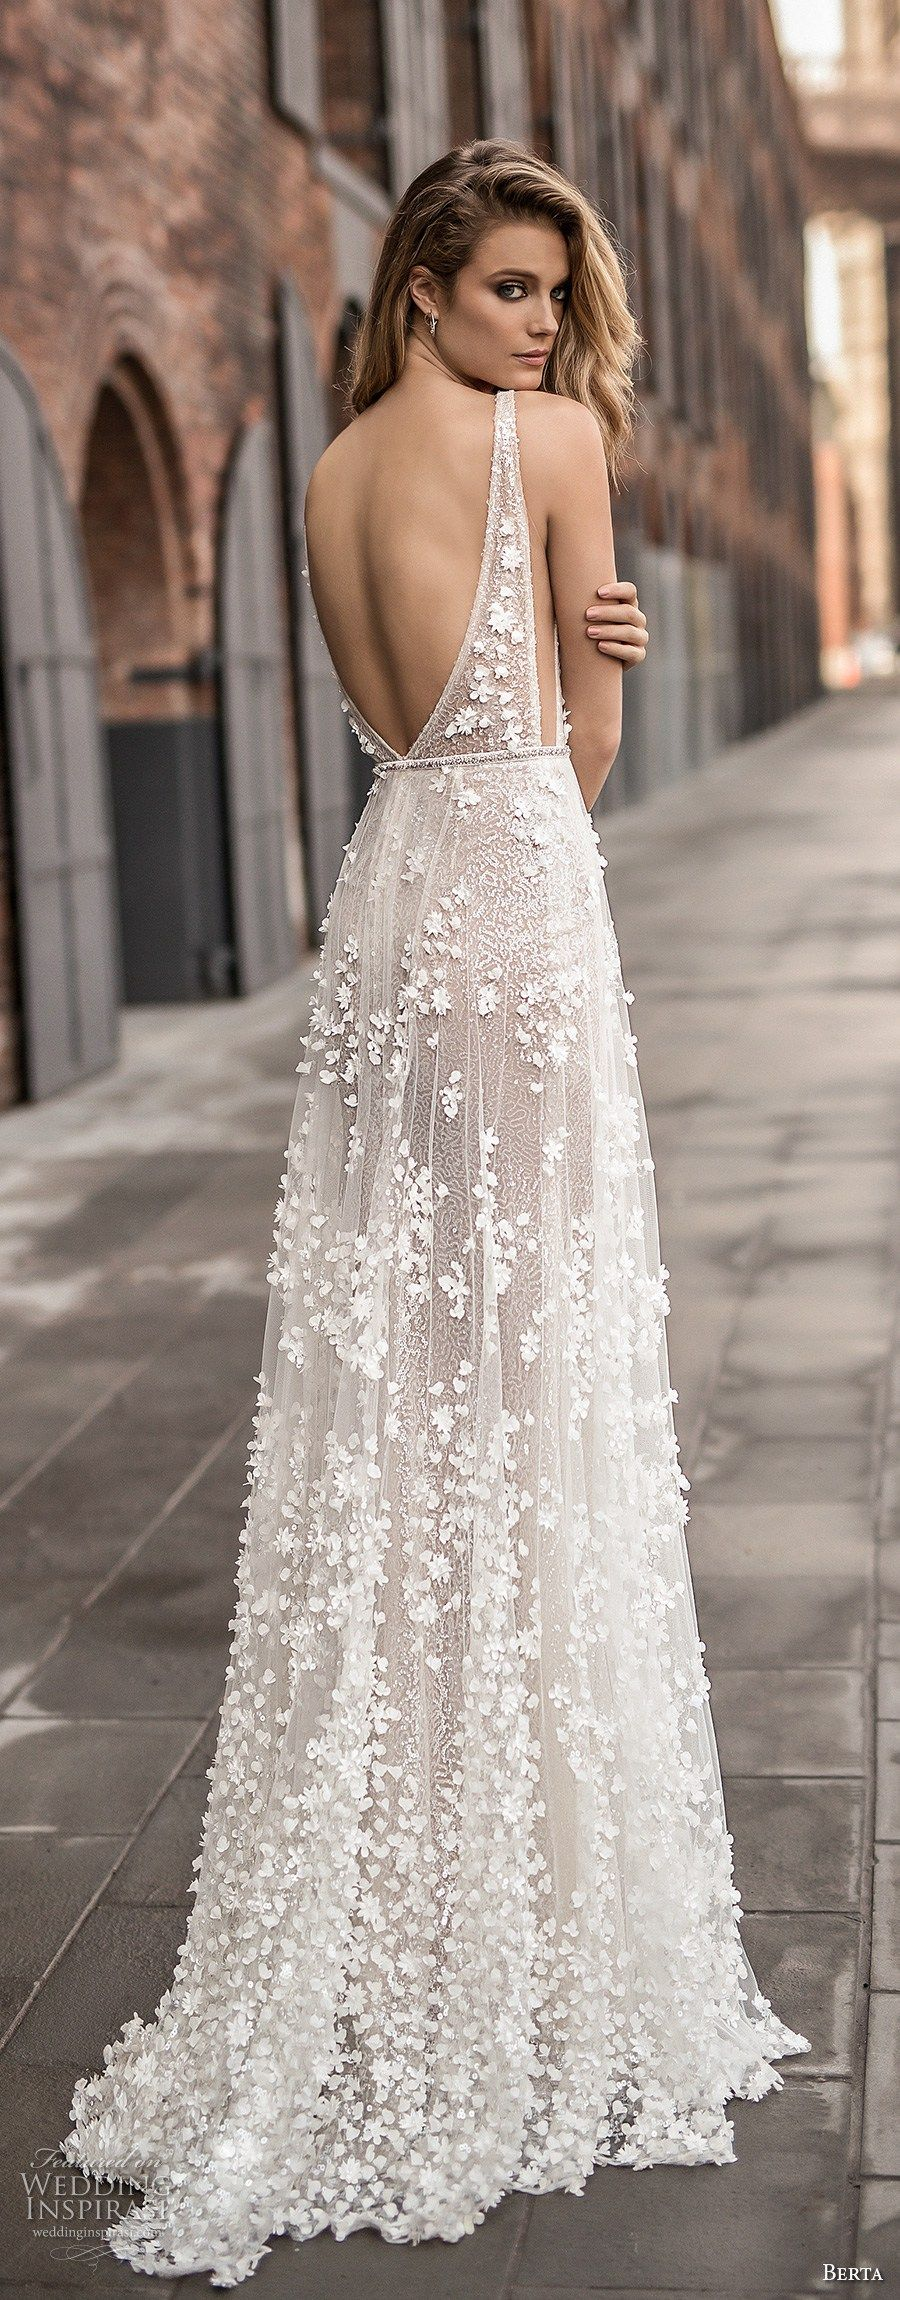 Berta bridal spring wedding dresses u part berta bridal